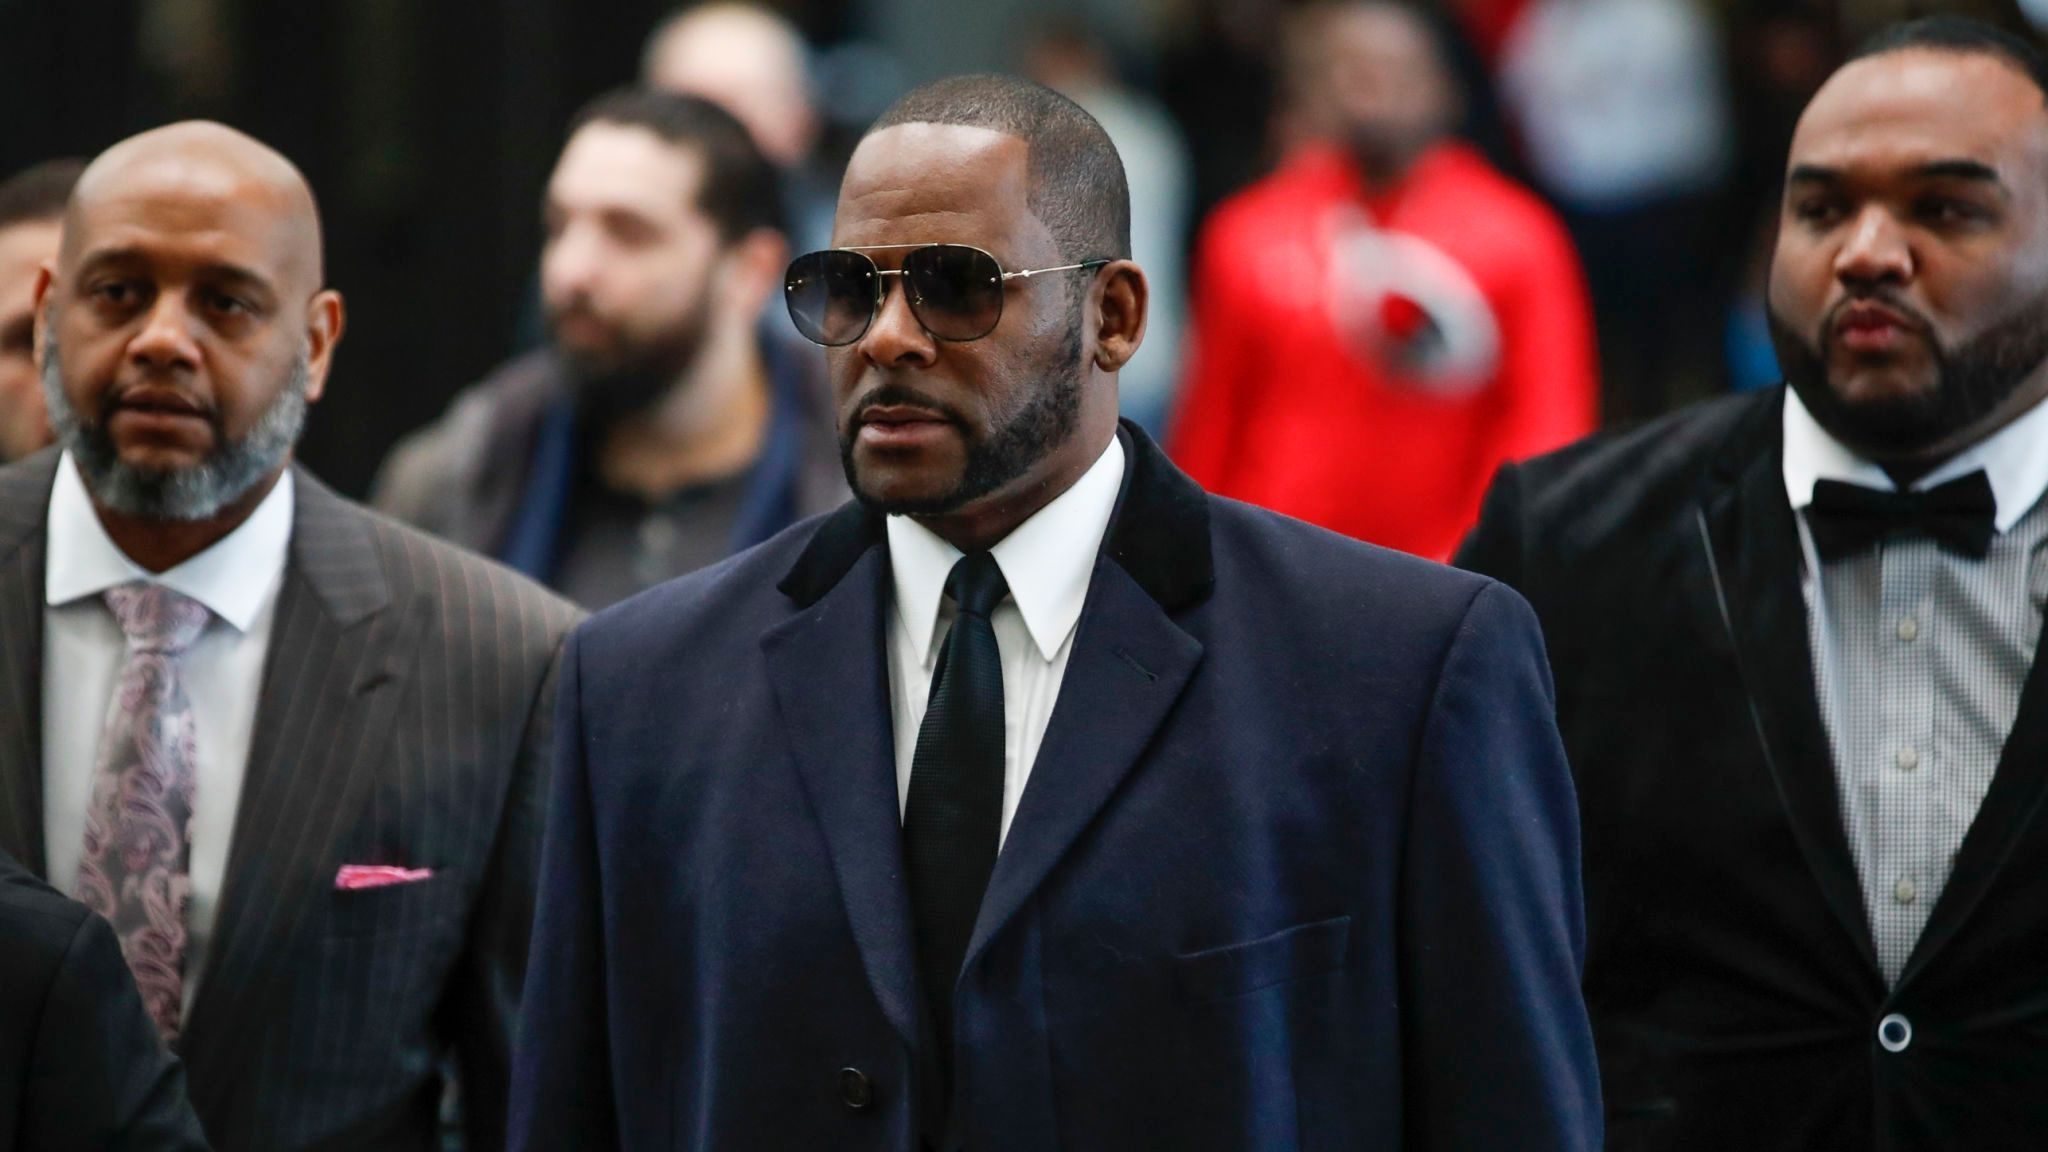 R. Kelly's lawyers say he can't read; judge reinstates civil sex abuse lawsuit